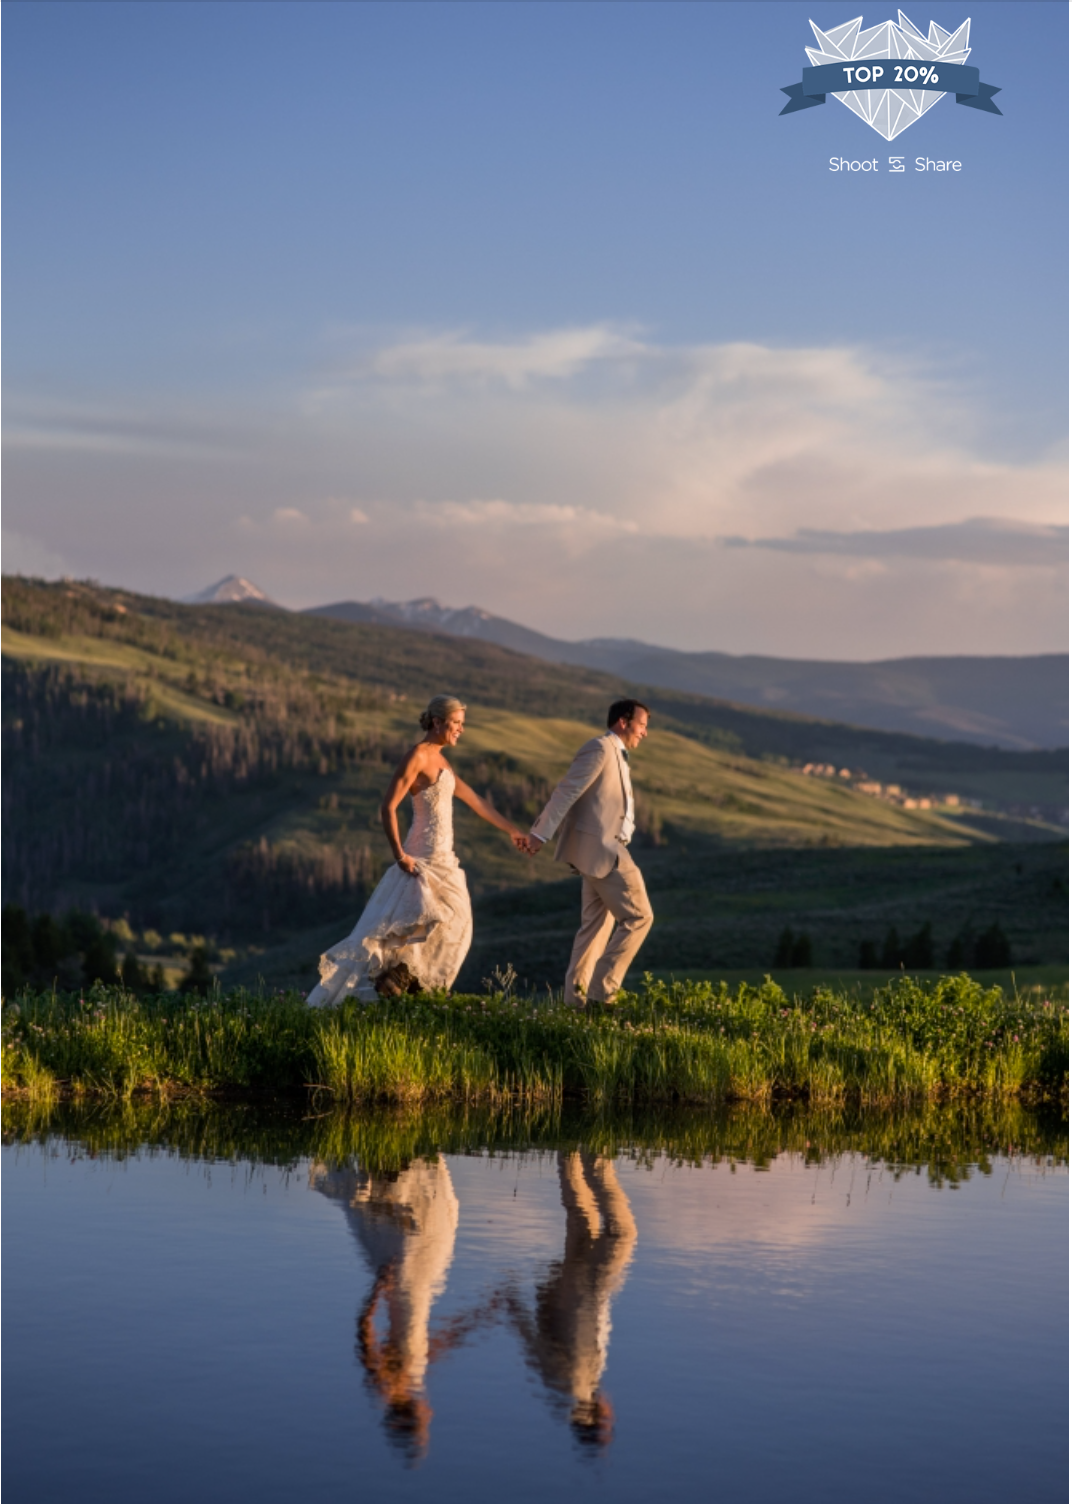 Strawberry Creek Ranch Wedding - The Wedding Couple Category - 4,378/ 35,527